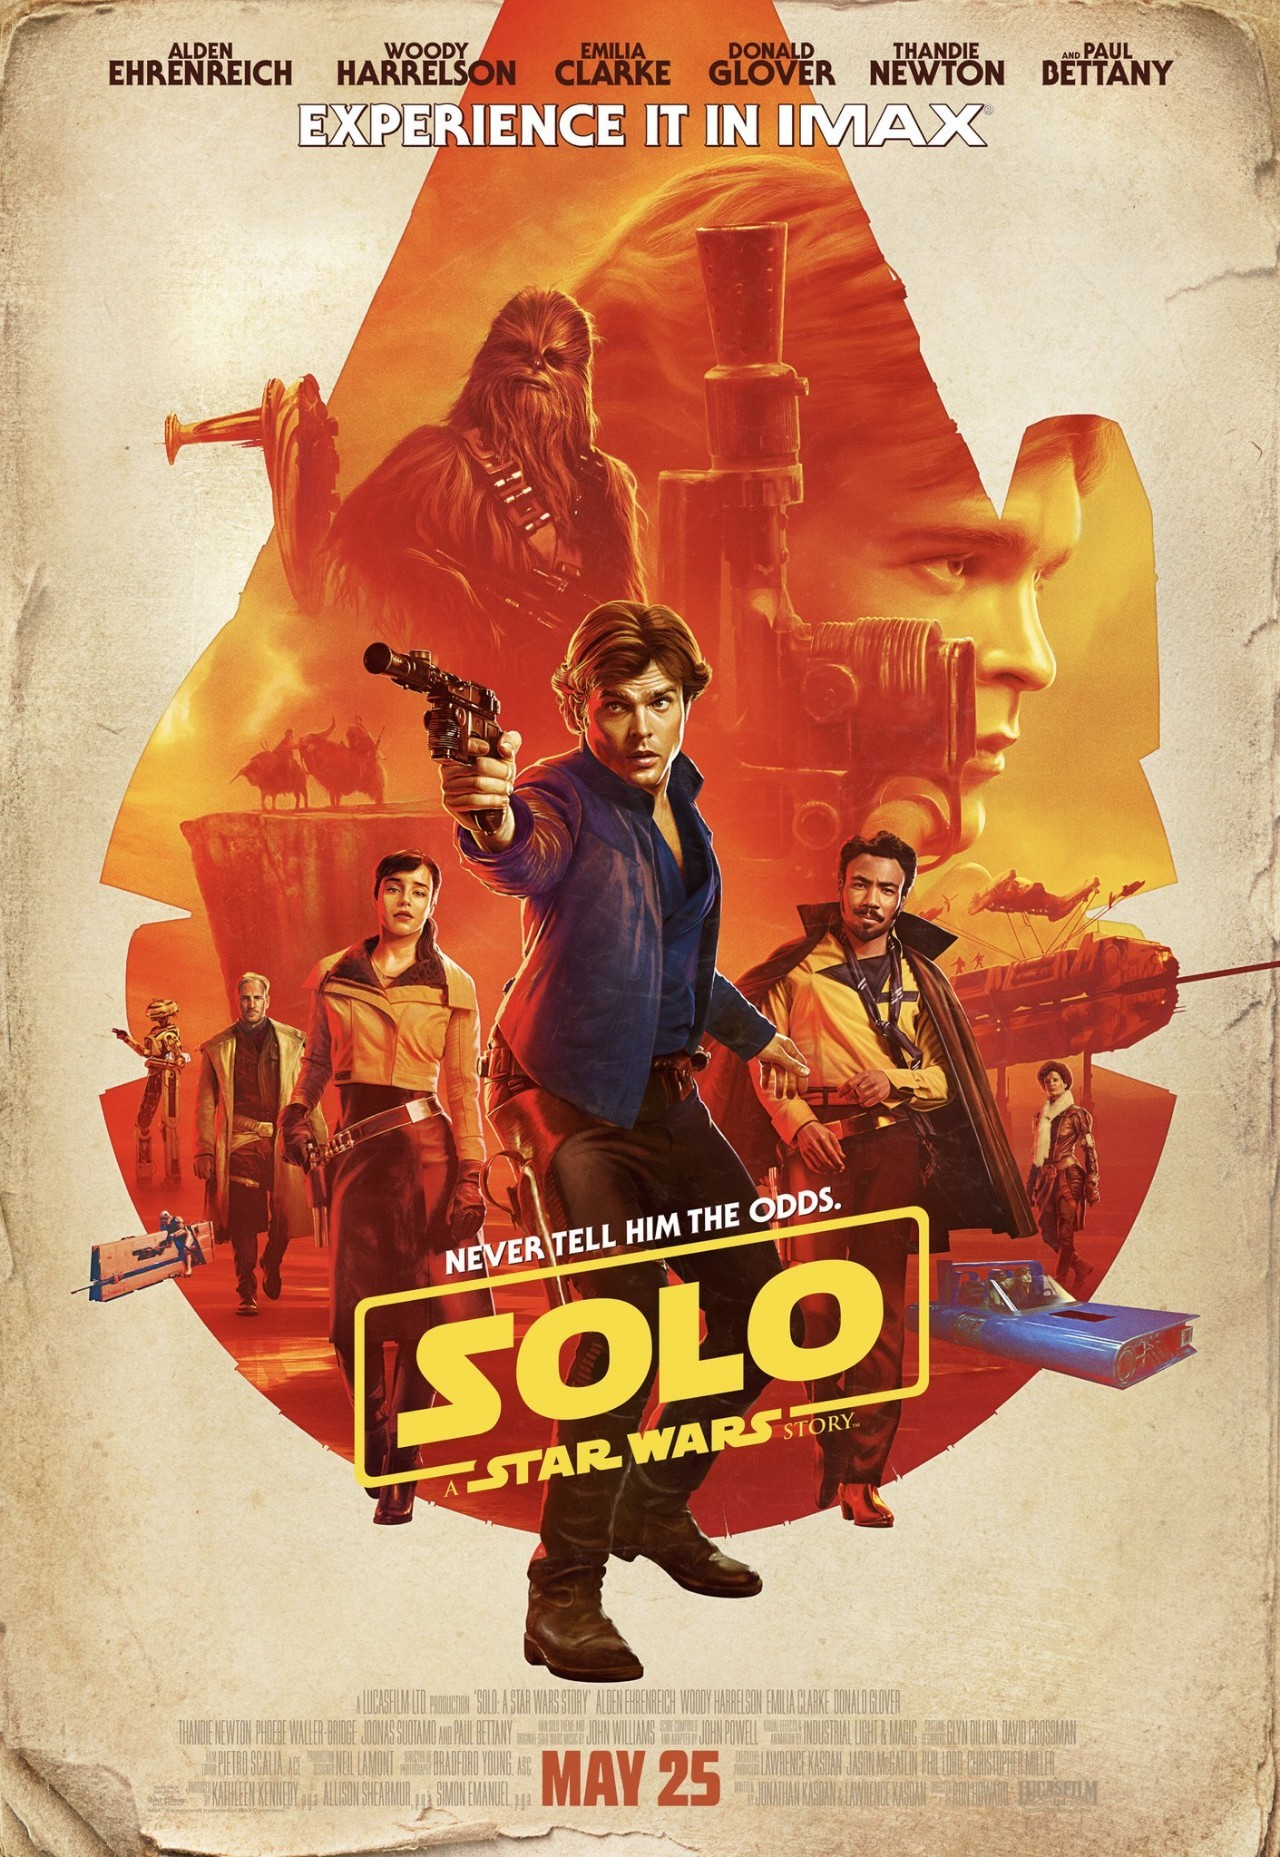 solo-star-wars-story-imax-poster-1108152